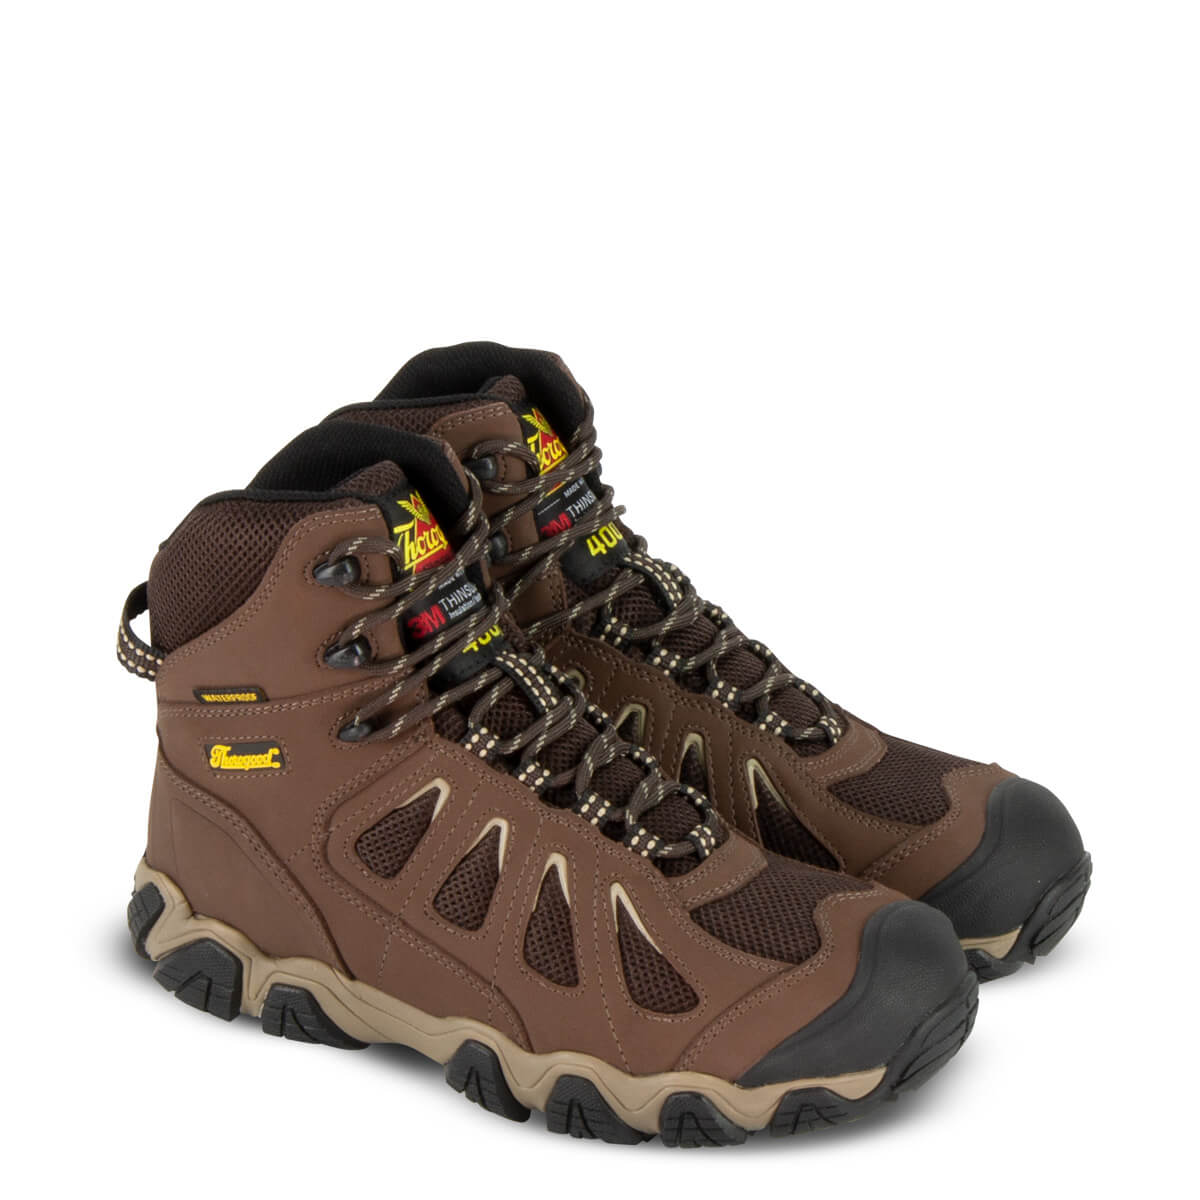 crosstrex-6-brown-waterproof-400g-864-4078_1